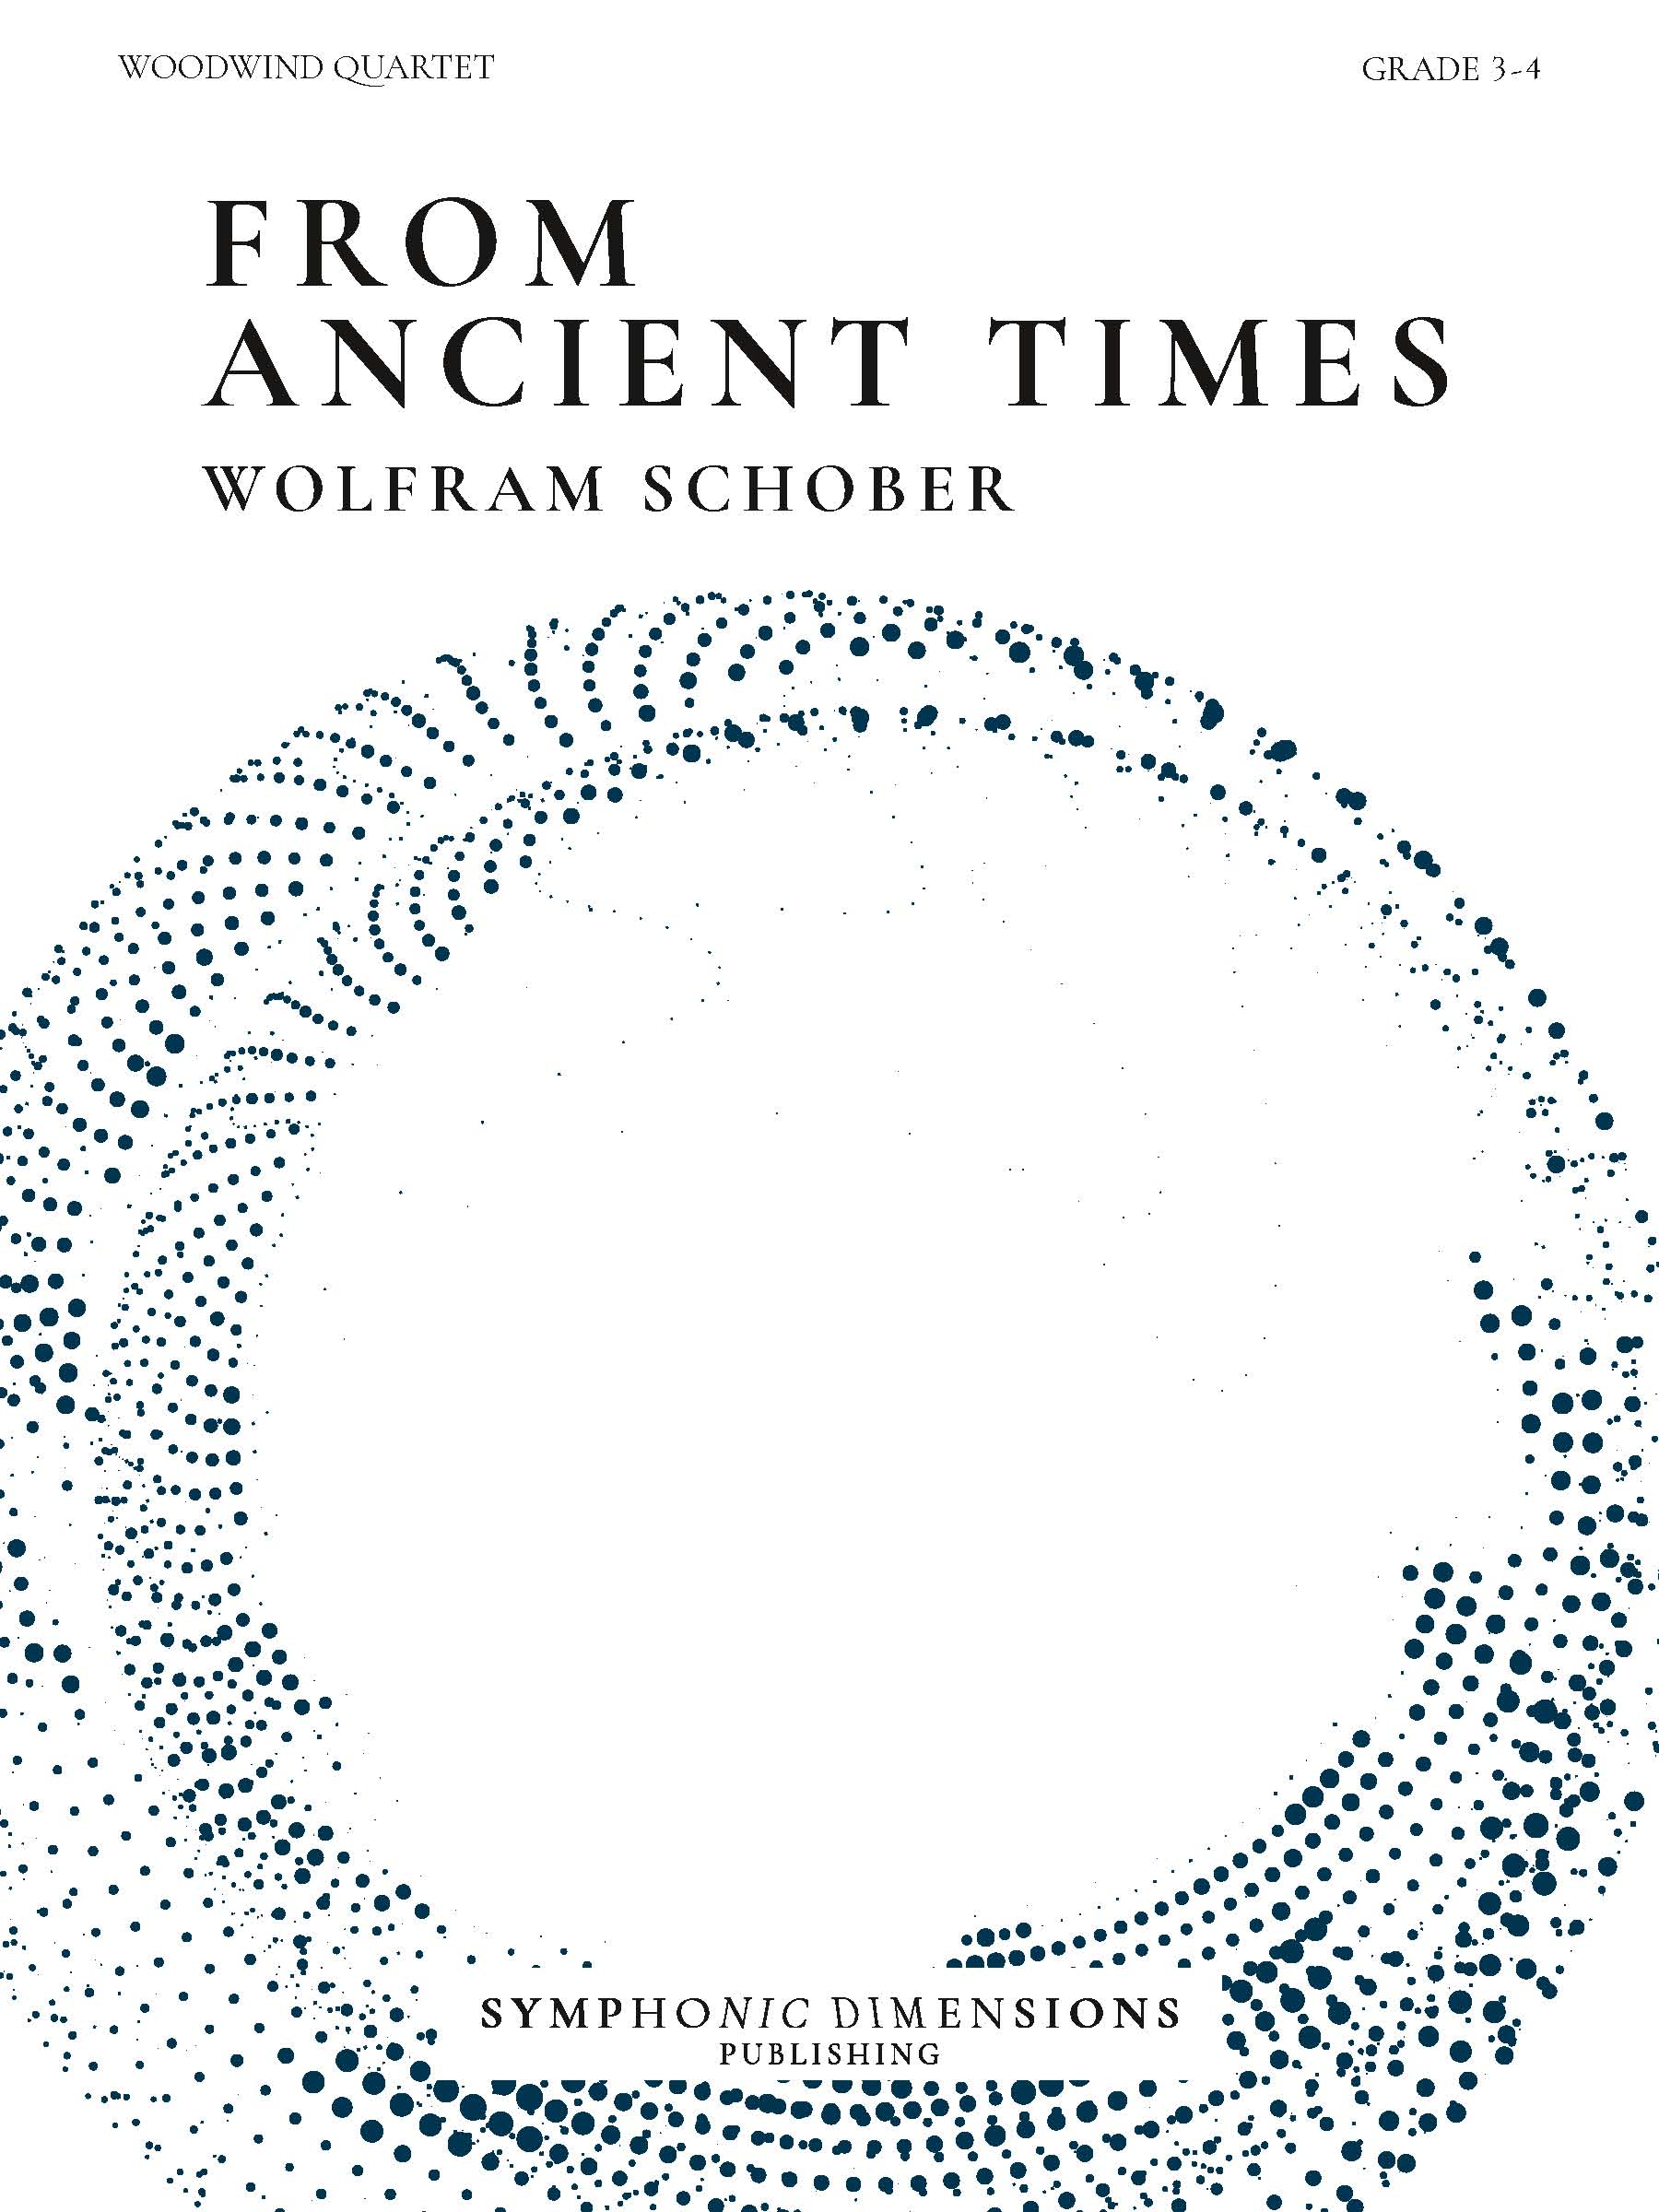 Wolfram Schober: From Ancient Times: Woodwind Quartet: Score and Parts